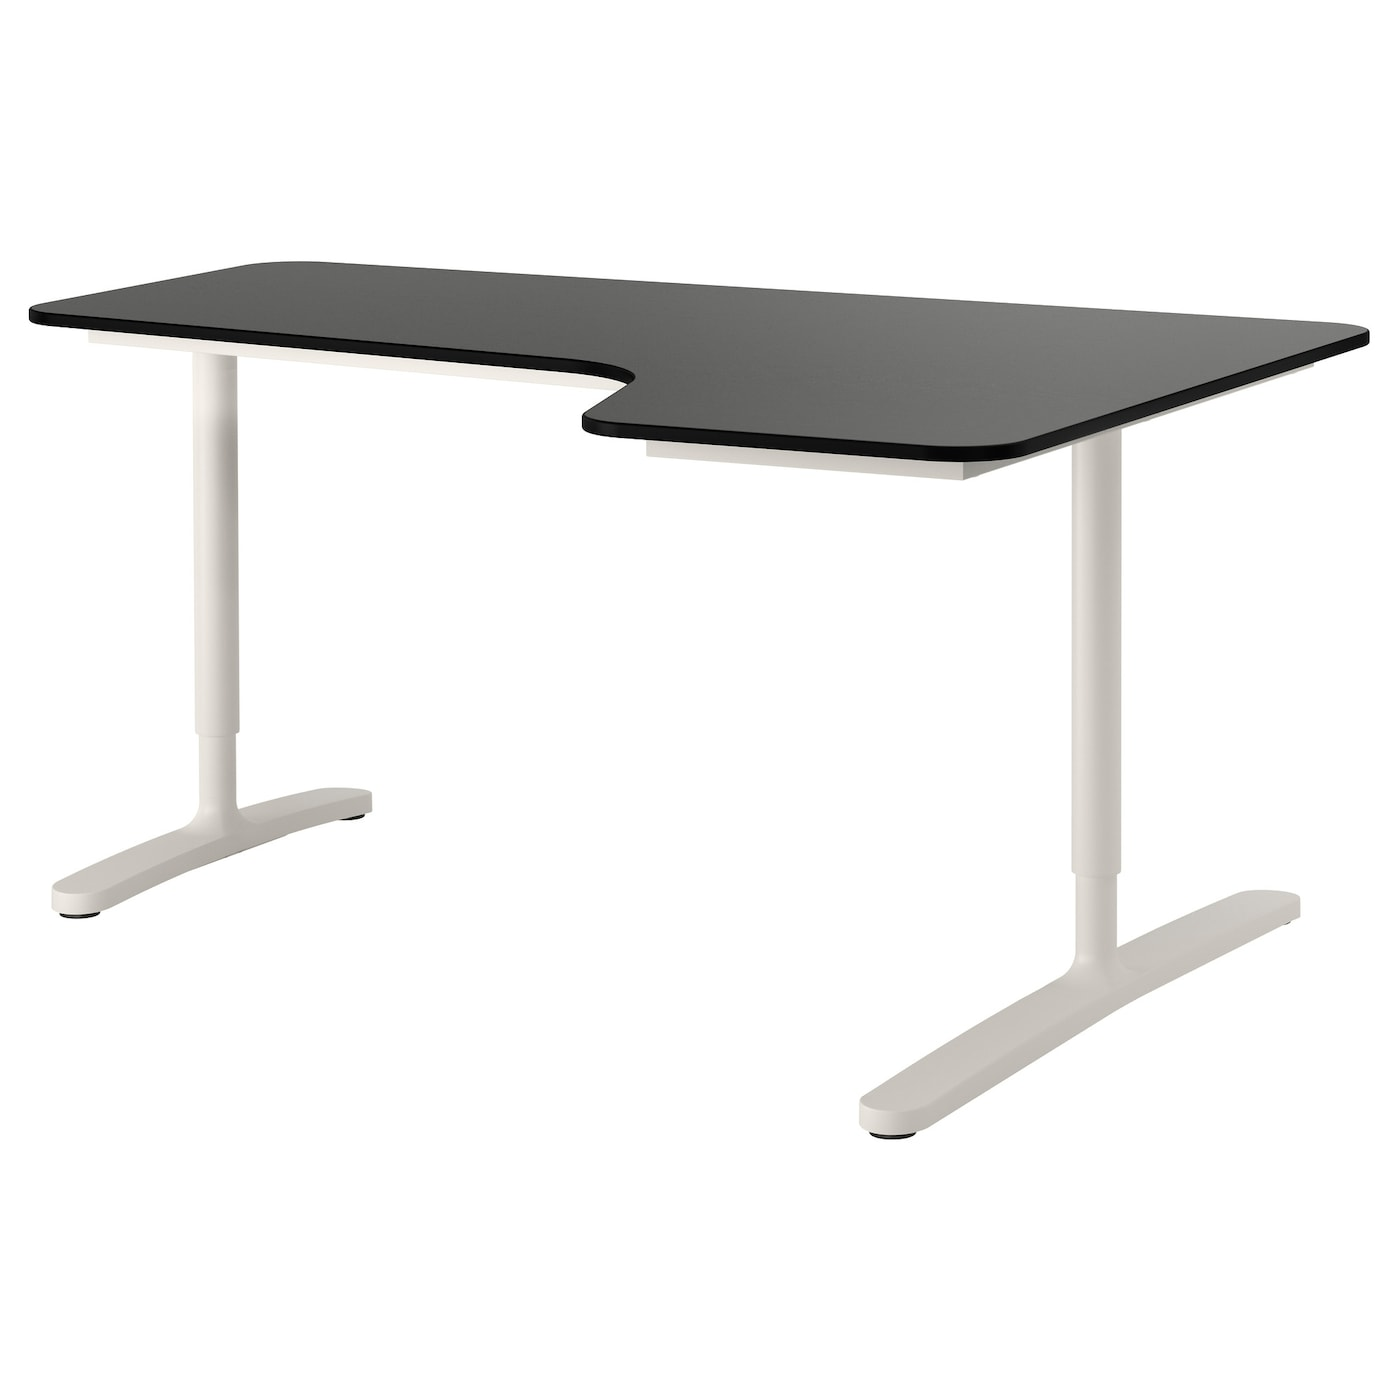 Design Ikea Corner Desk bekant corner desk right black brownwhite 160x110 cm ikea 10 year guarantee read about the terms in guarantee